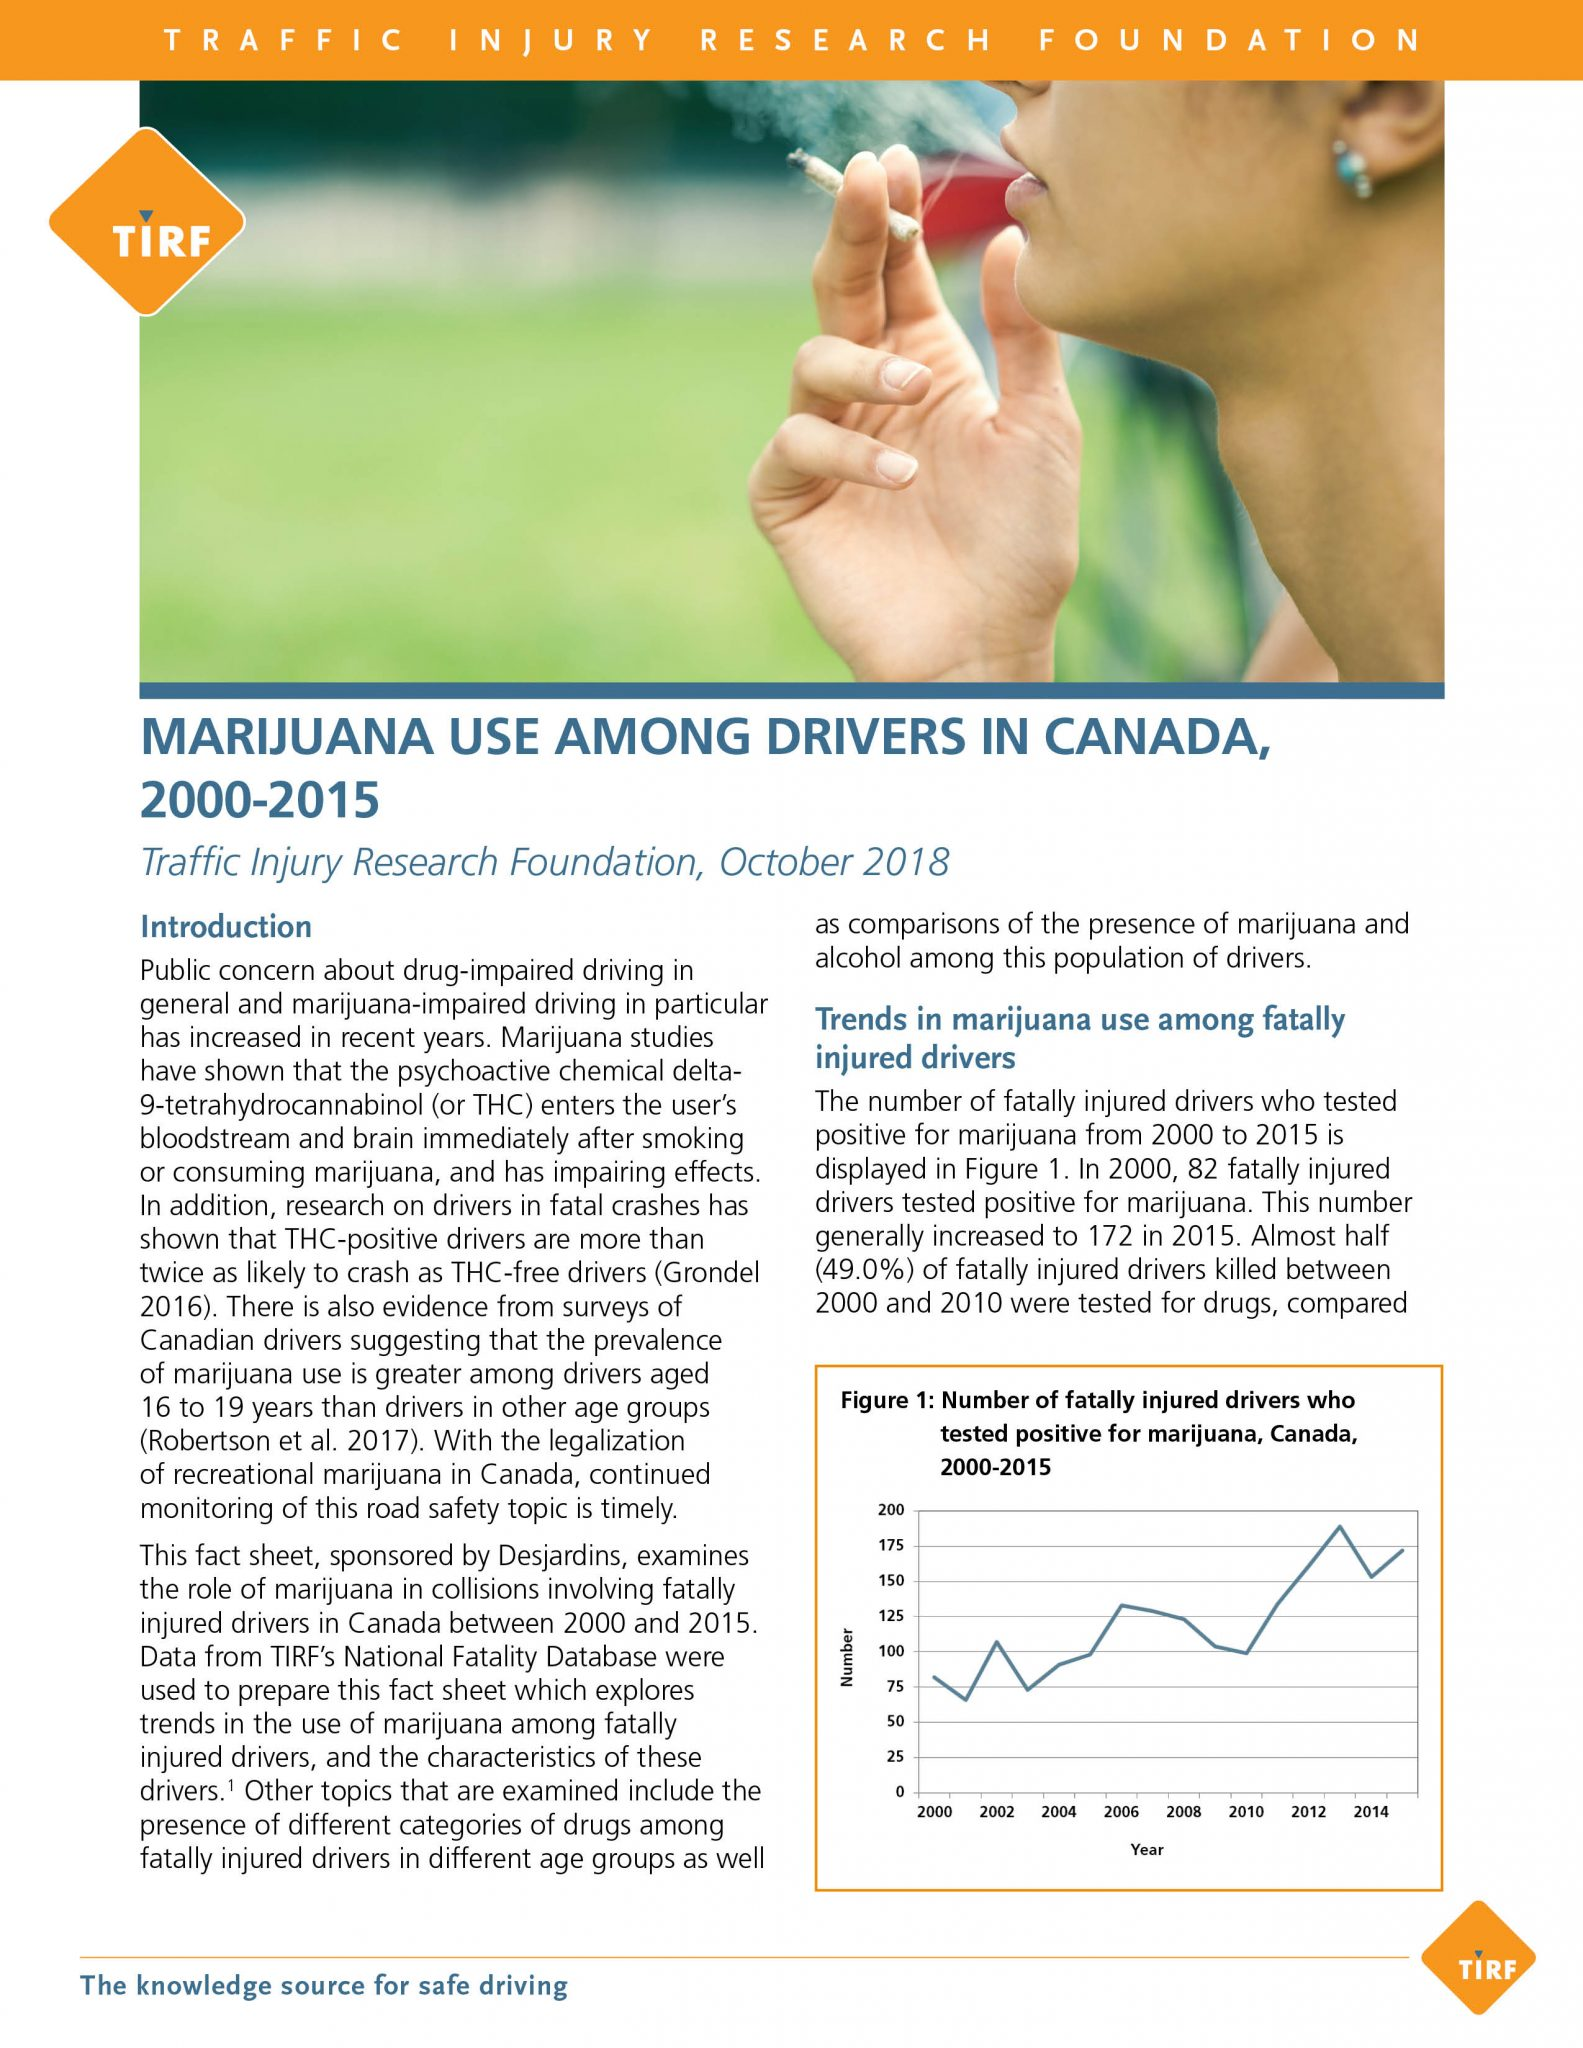 Marijuana Use Among Drivers in Canada, 2000-2015